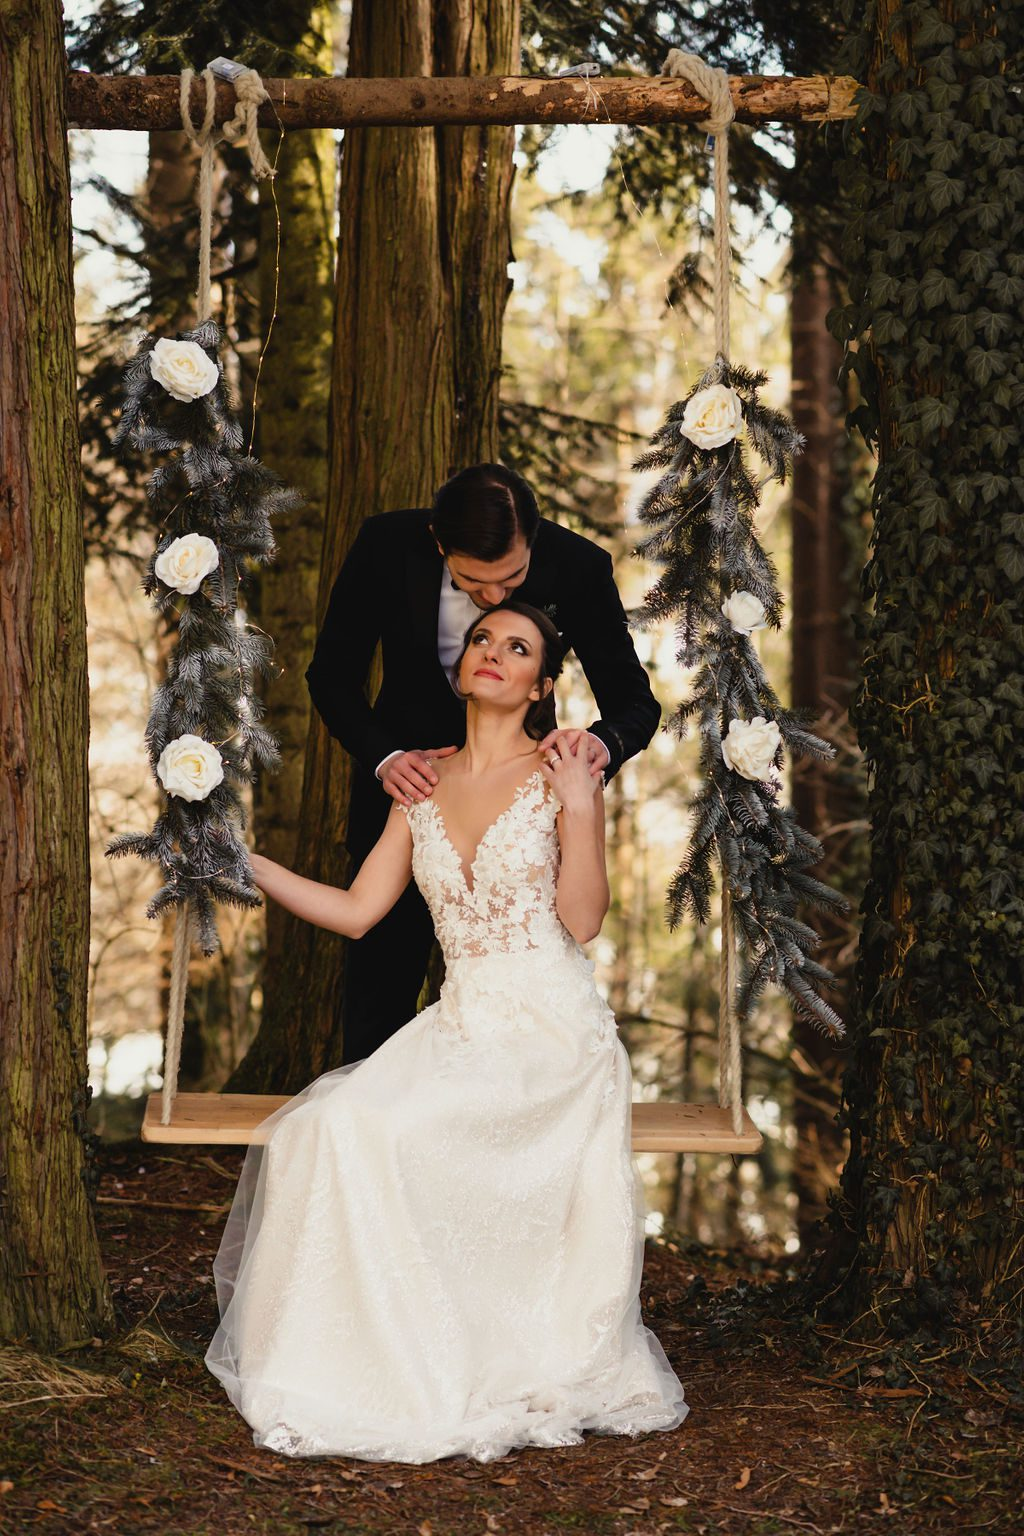 Bride and groom on a swing.